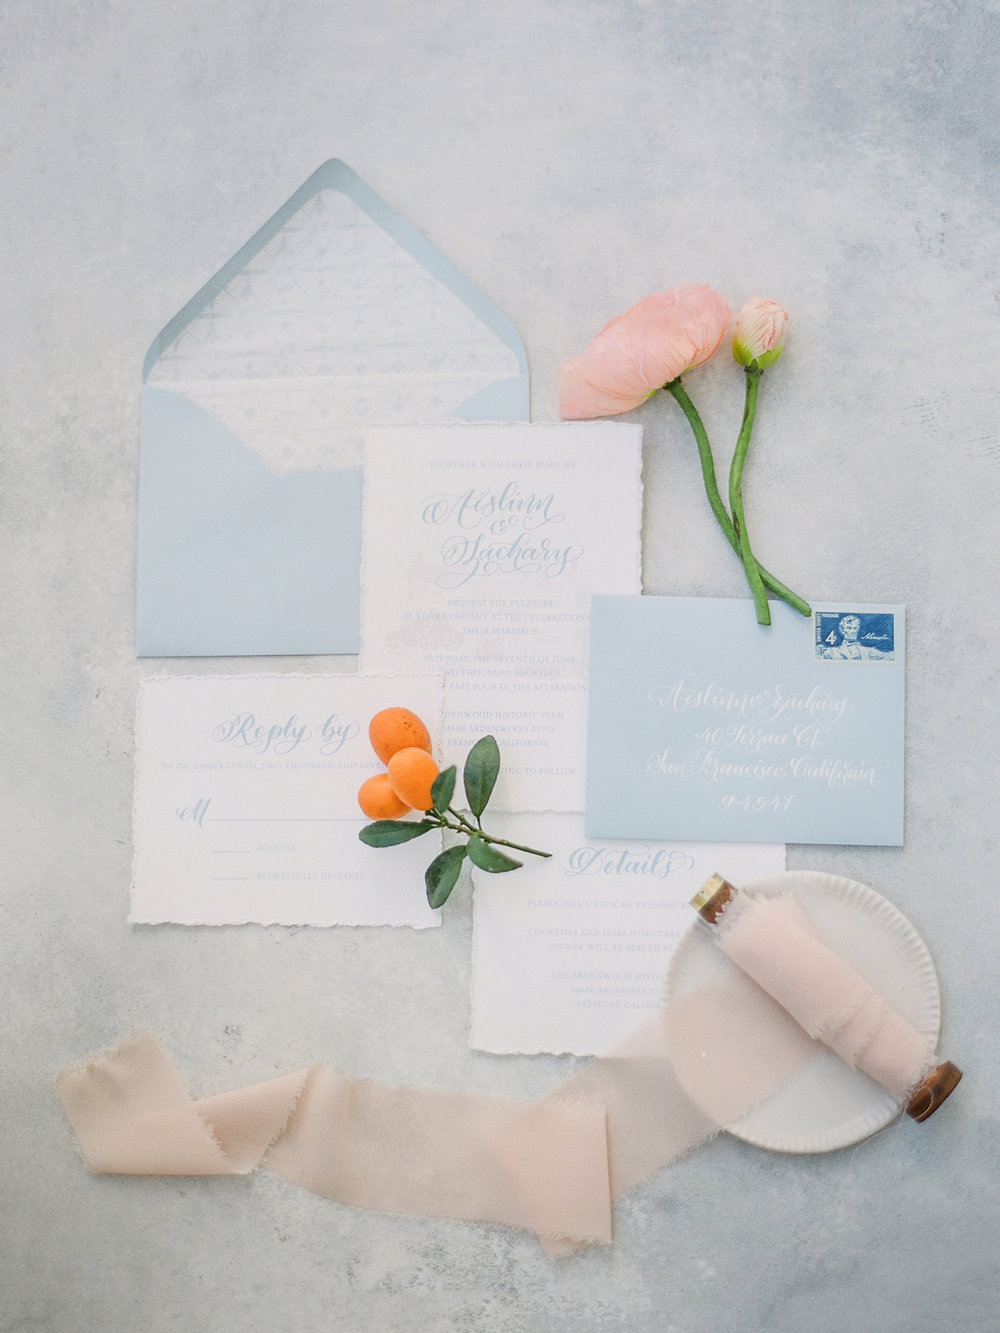 Light blue and white wedding invitation